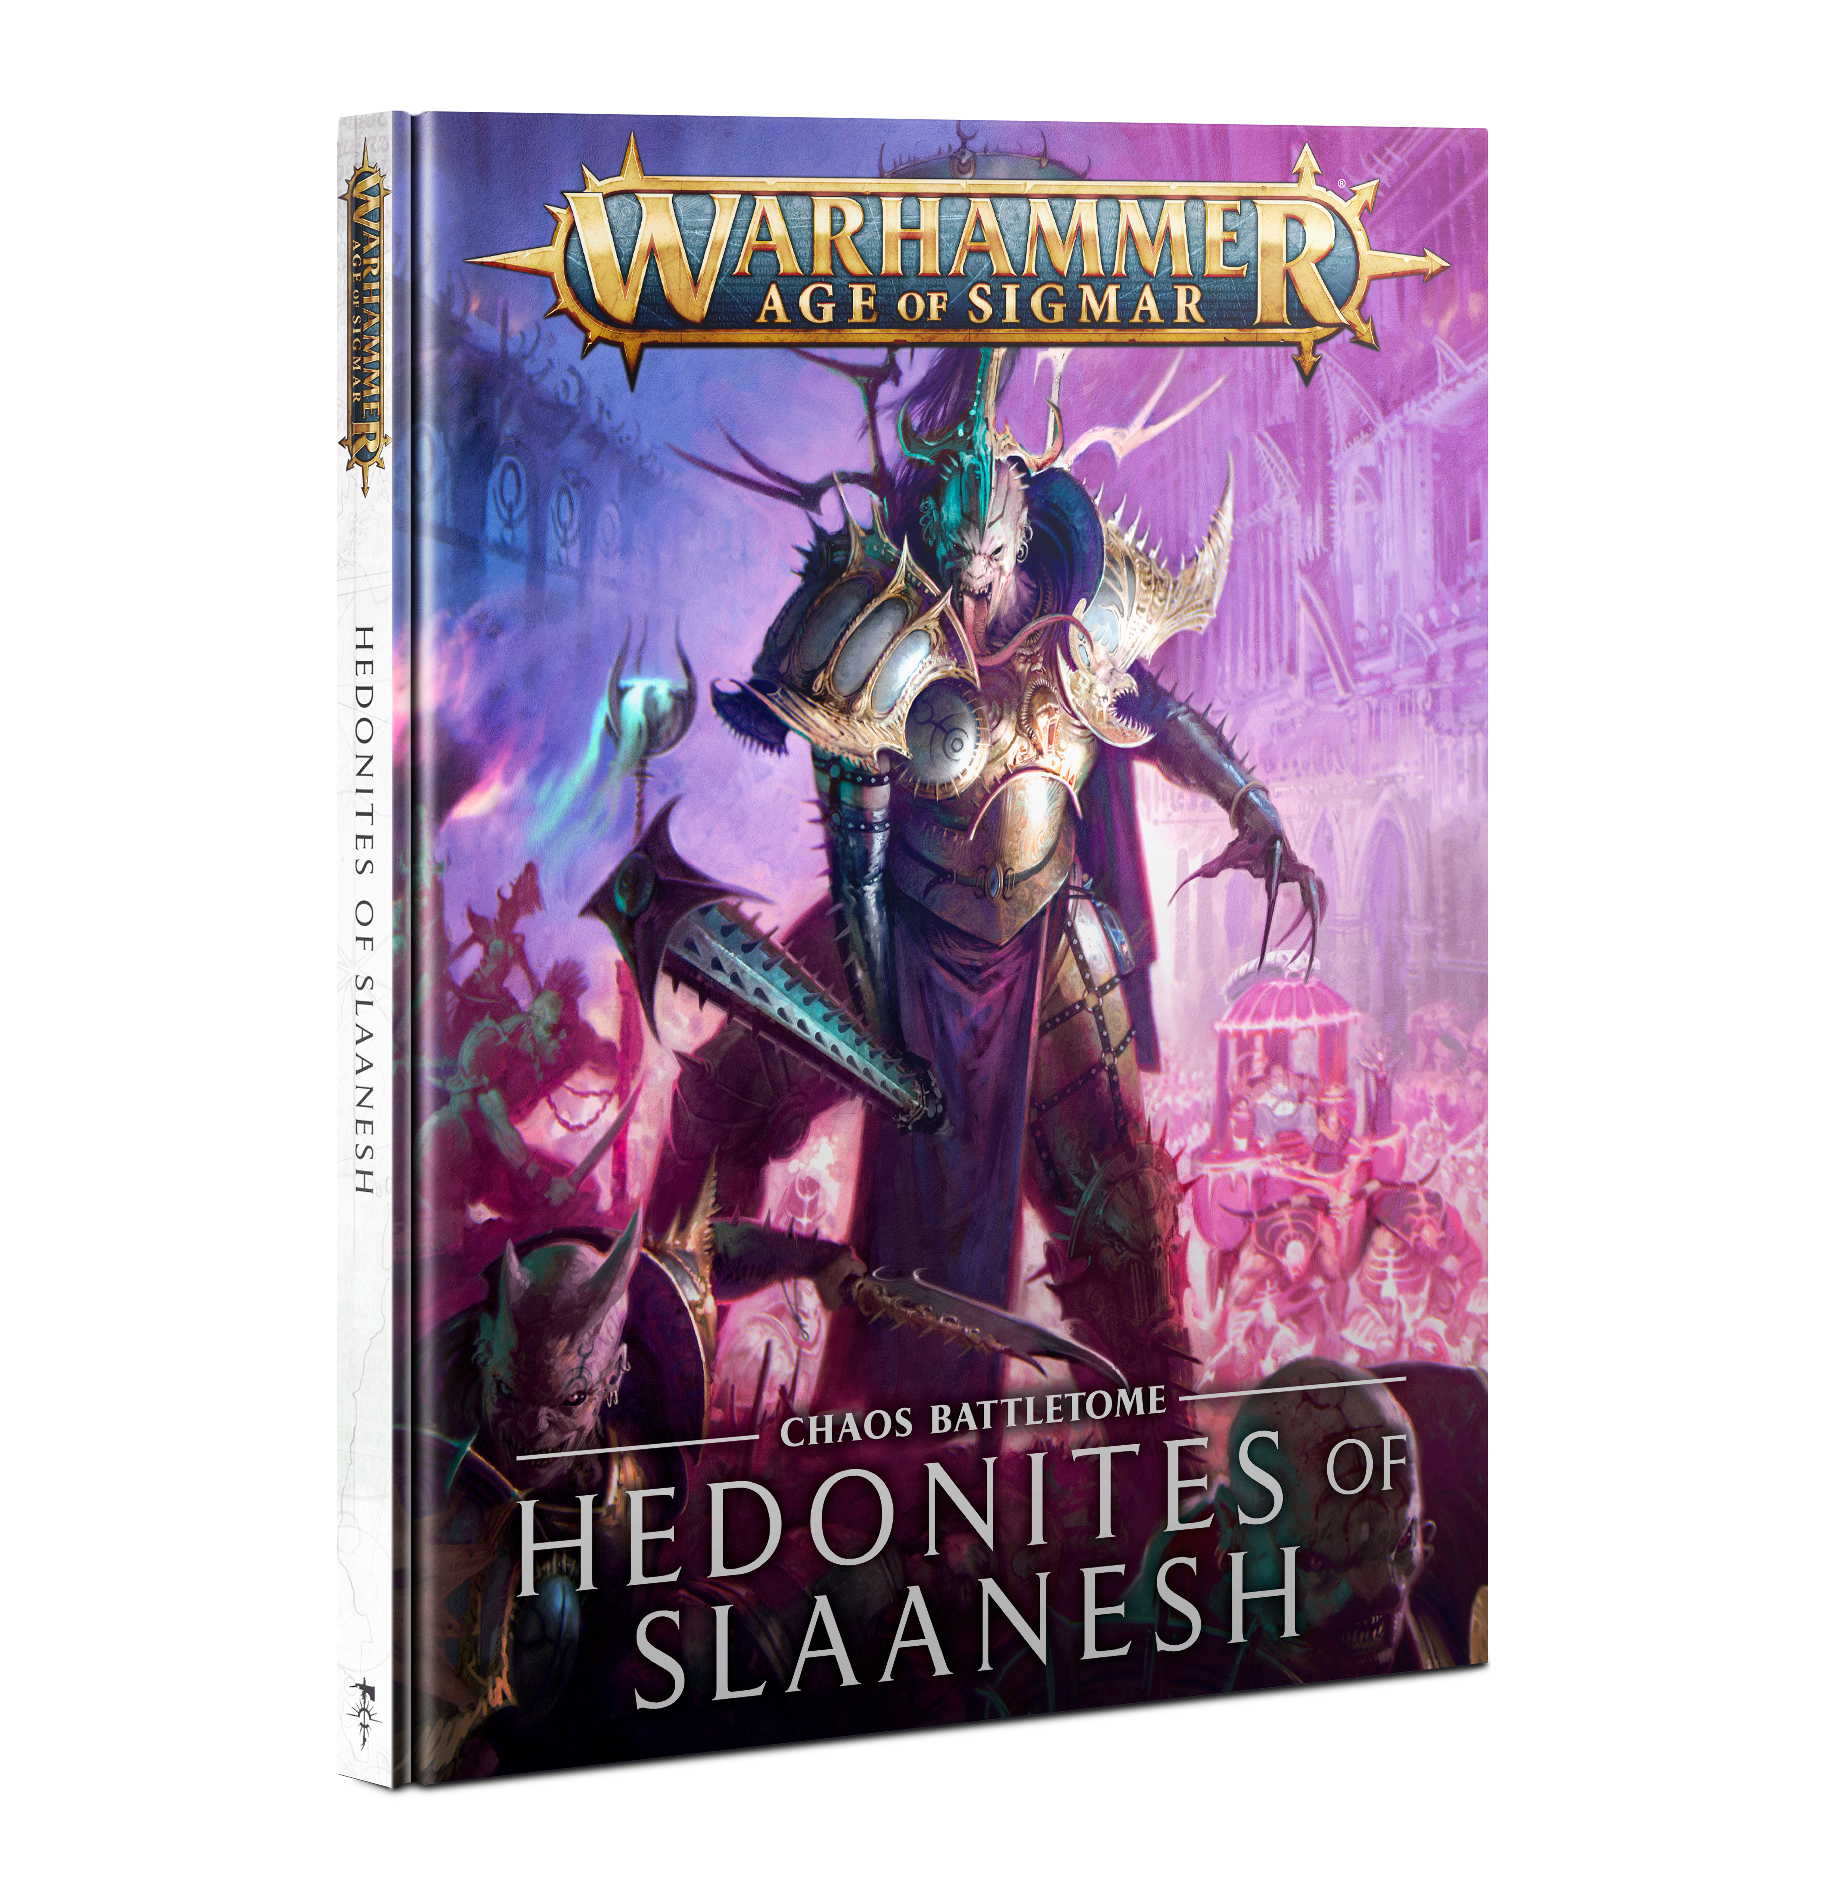 Battletome: Hedonites of Slaanesh